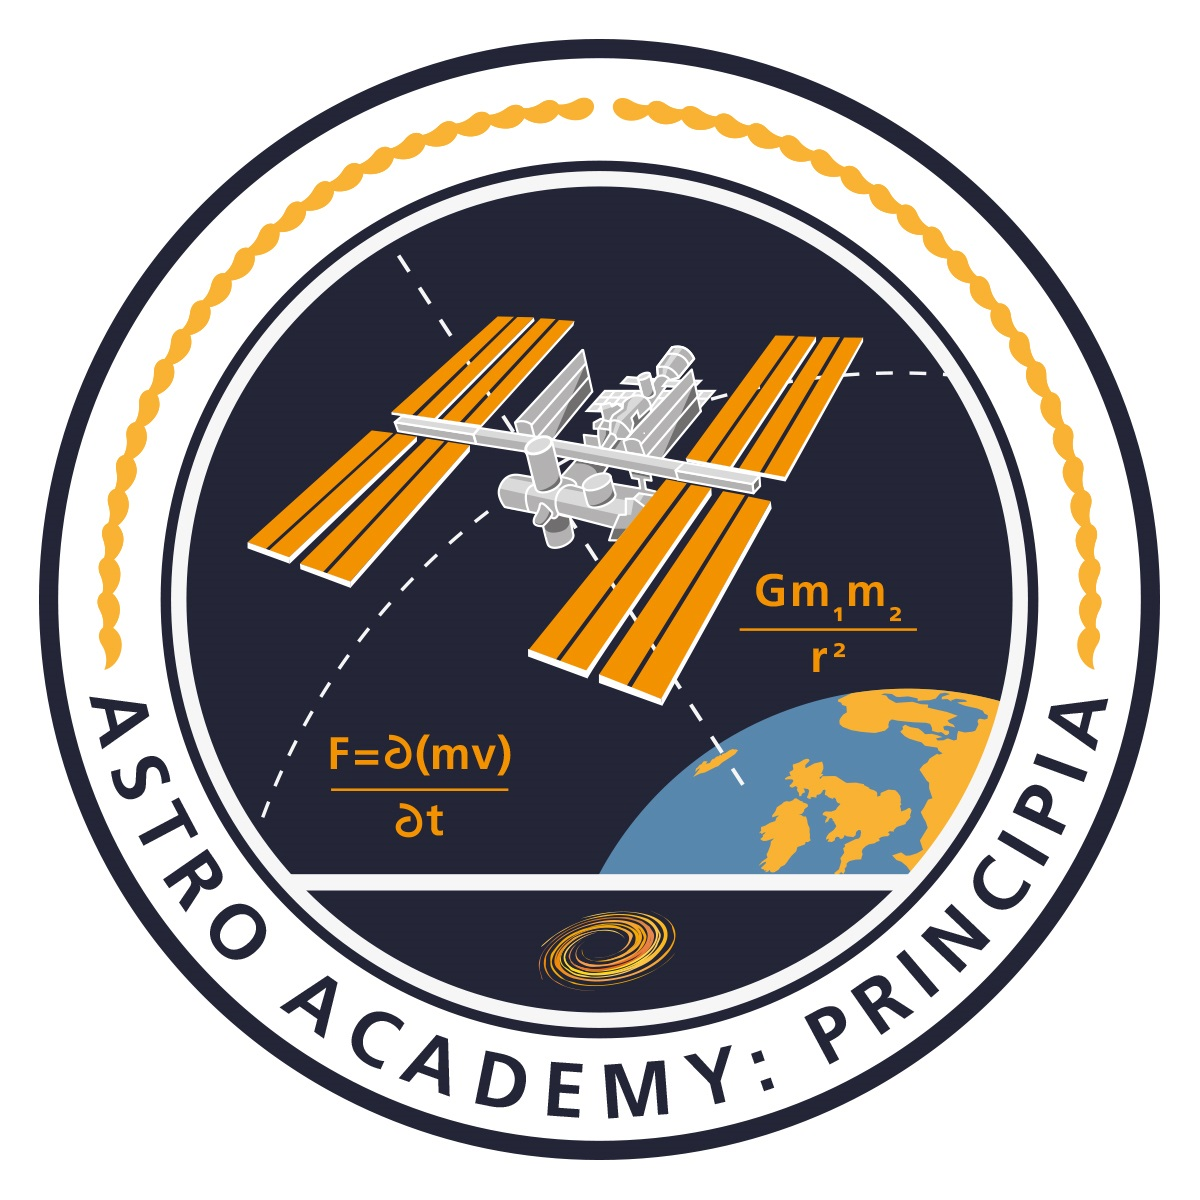 6-spaceacademy-patch-tg-20151